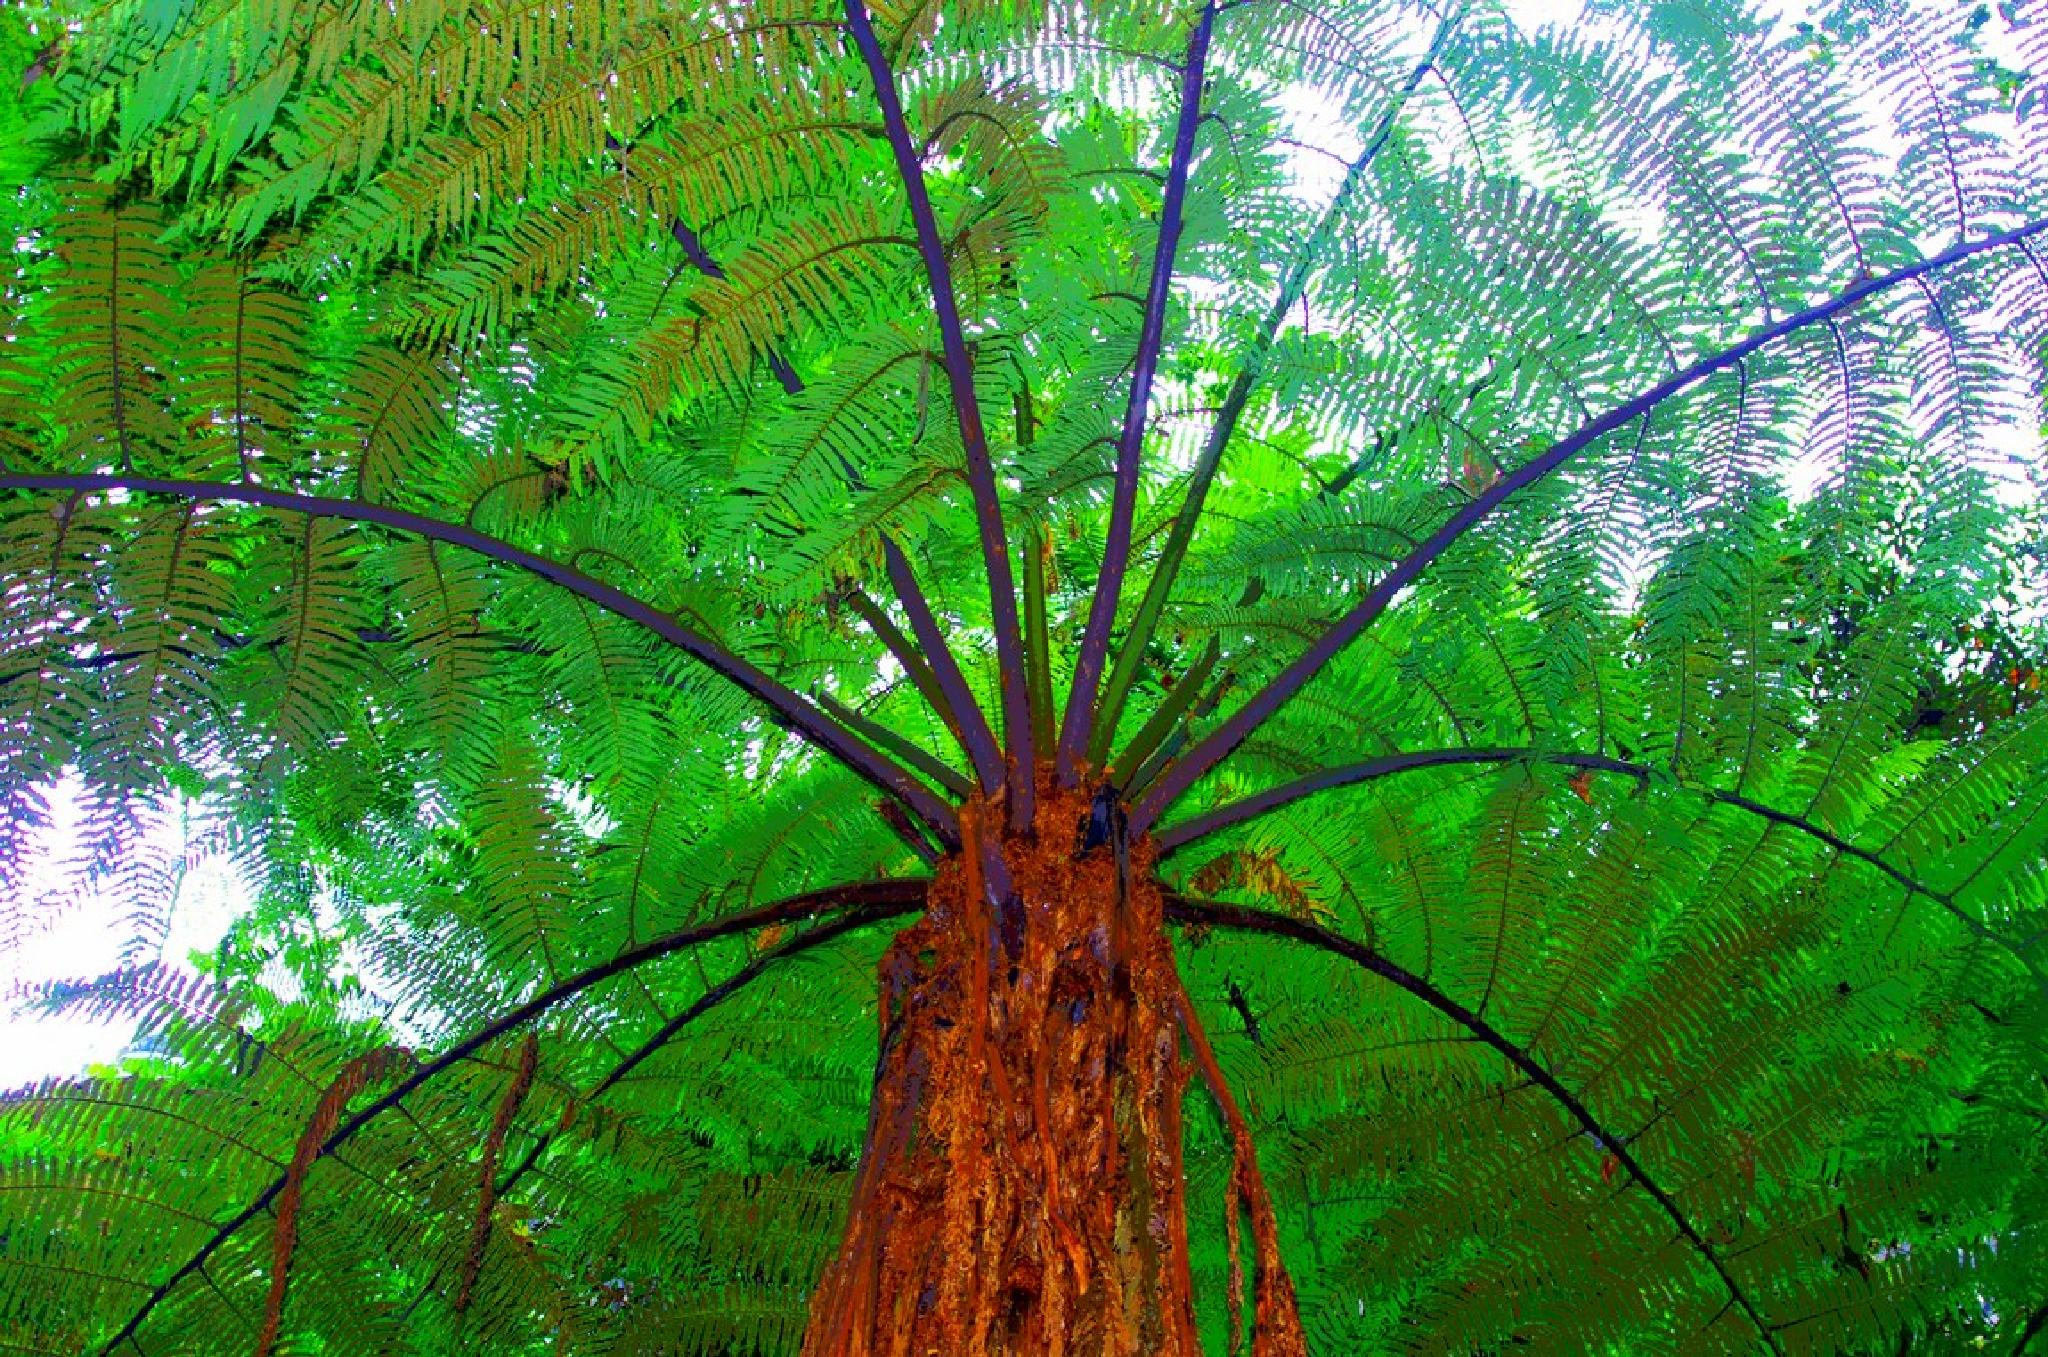 Giant fern of the Andes by Dan Steeves